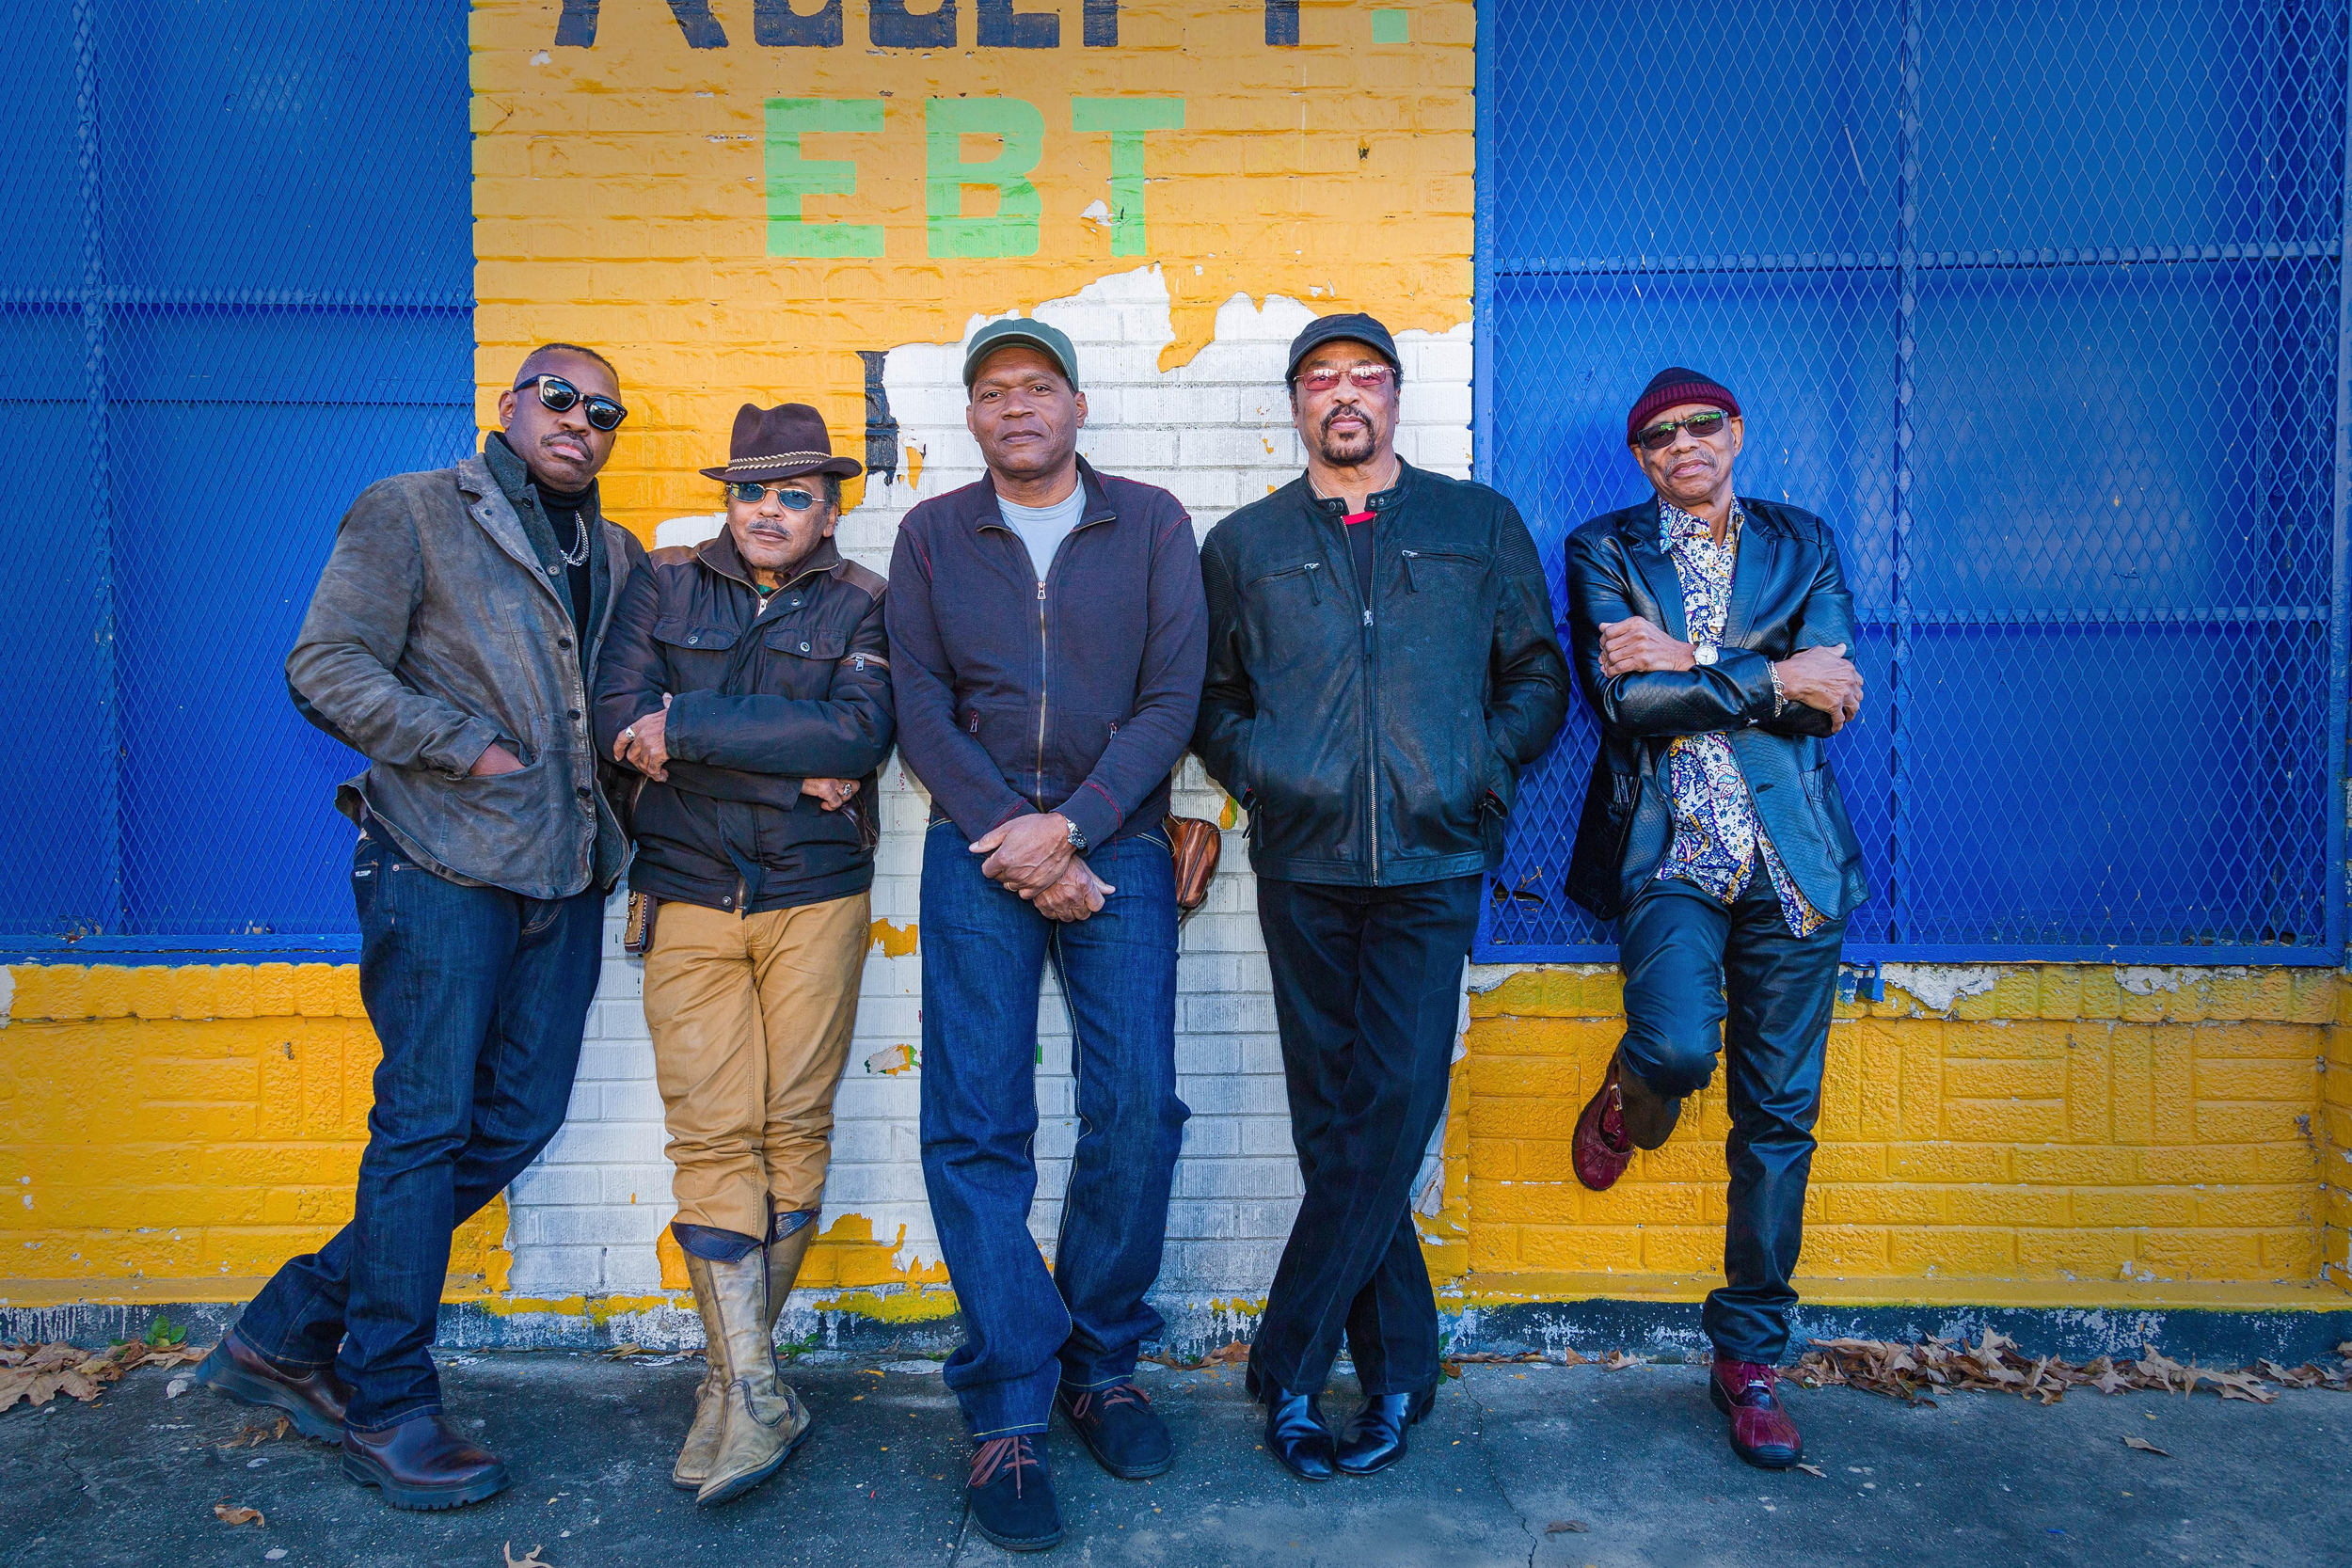 Counsel of Elders: Robert Cray on Speaking from the Soul